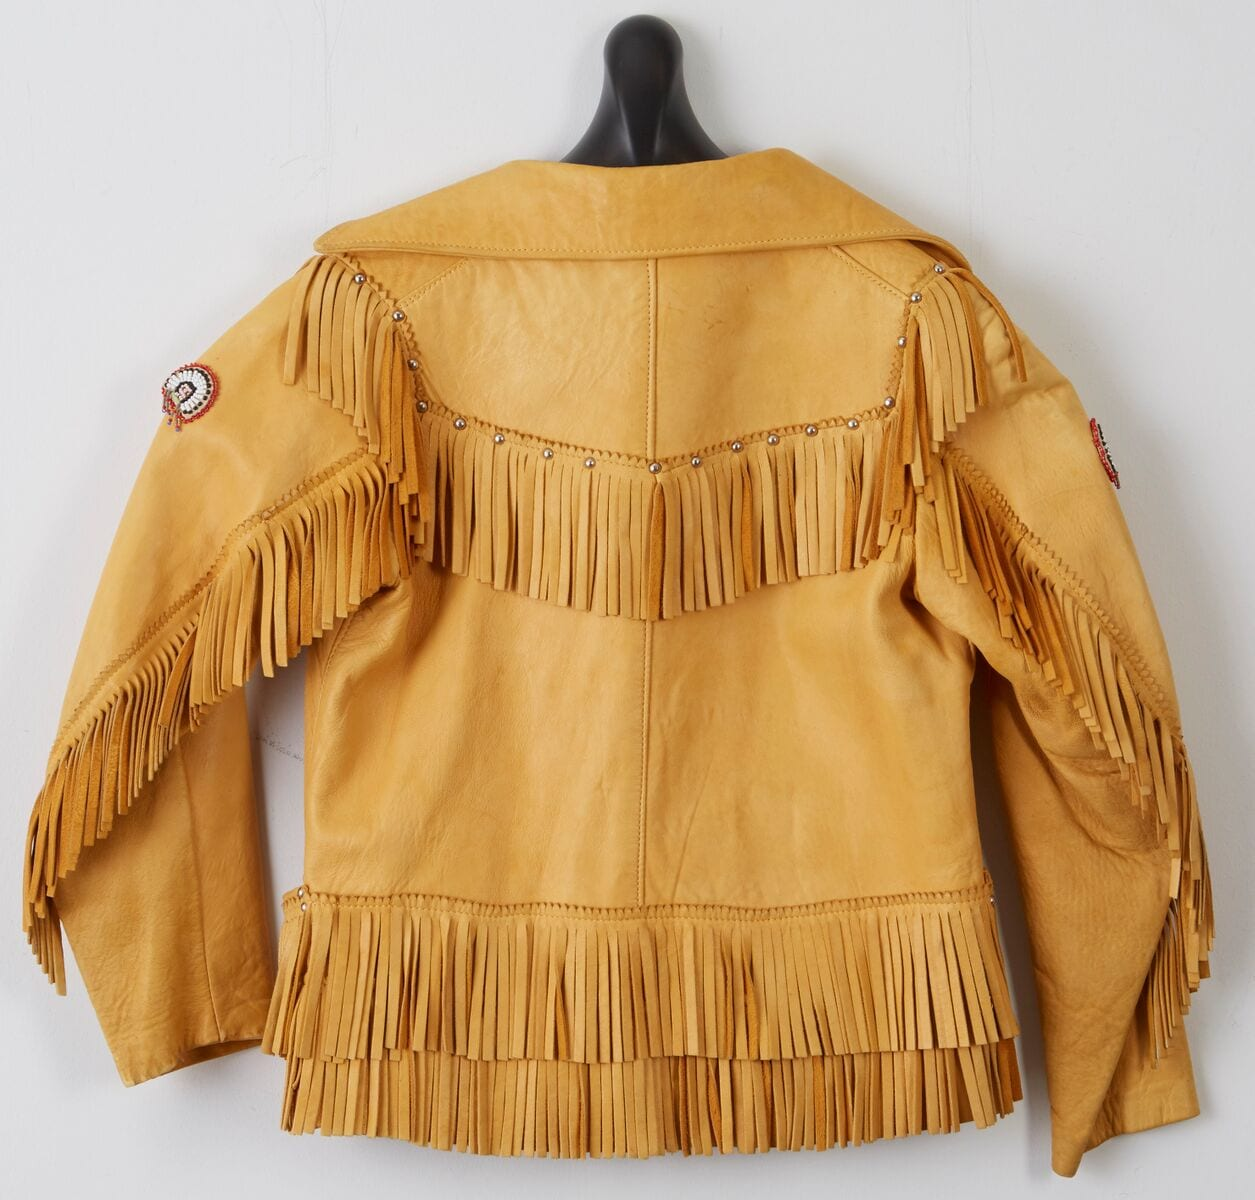 Lot 090: Children's Fringed Leather Jacket with Beadwork